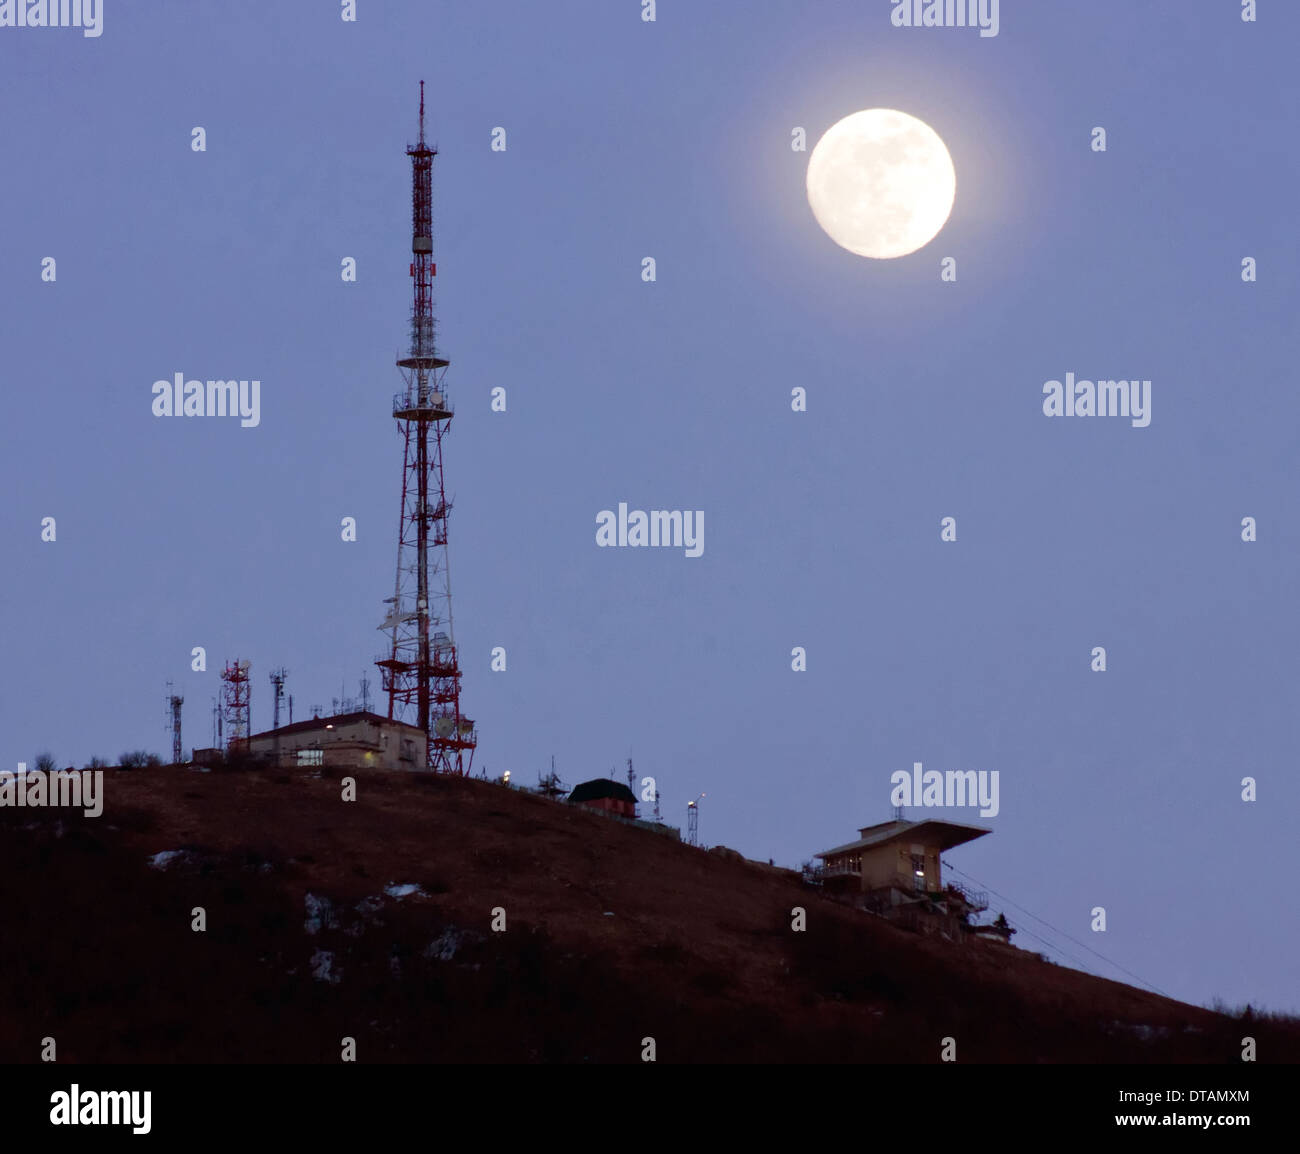 Tv tower - Stock Image